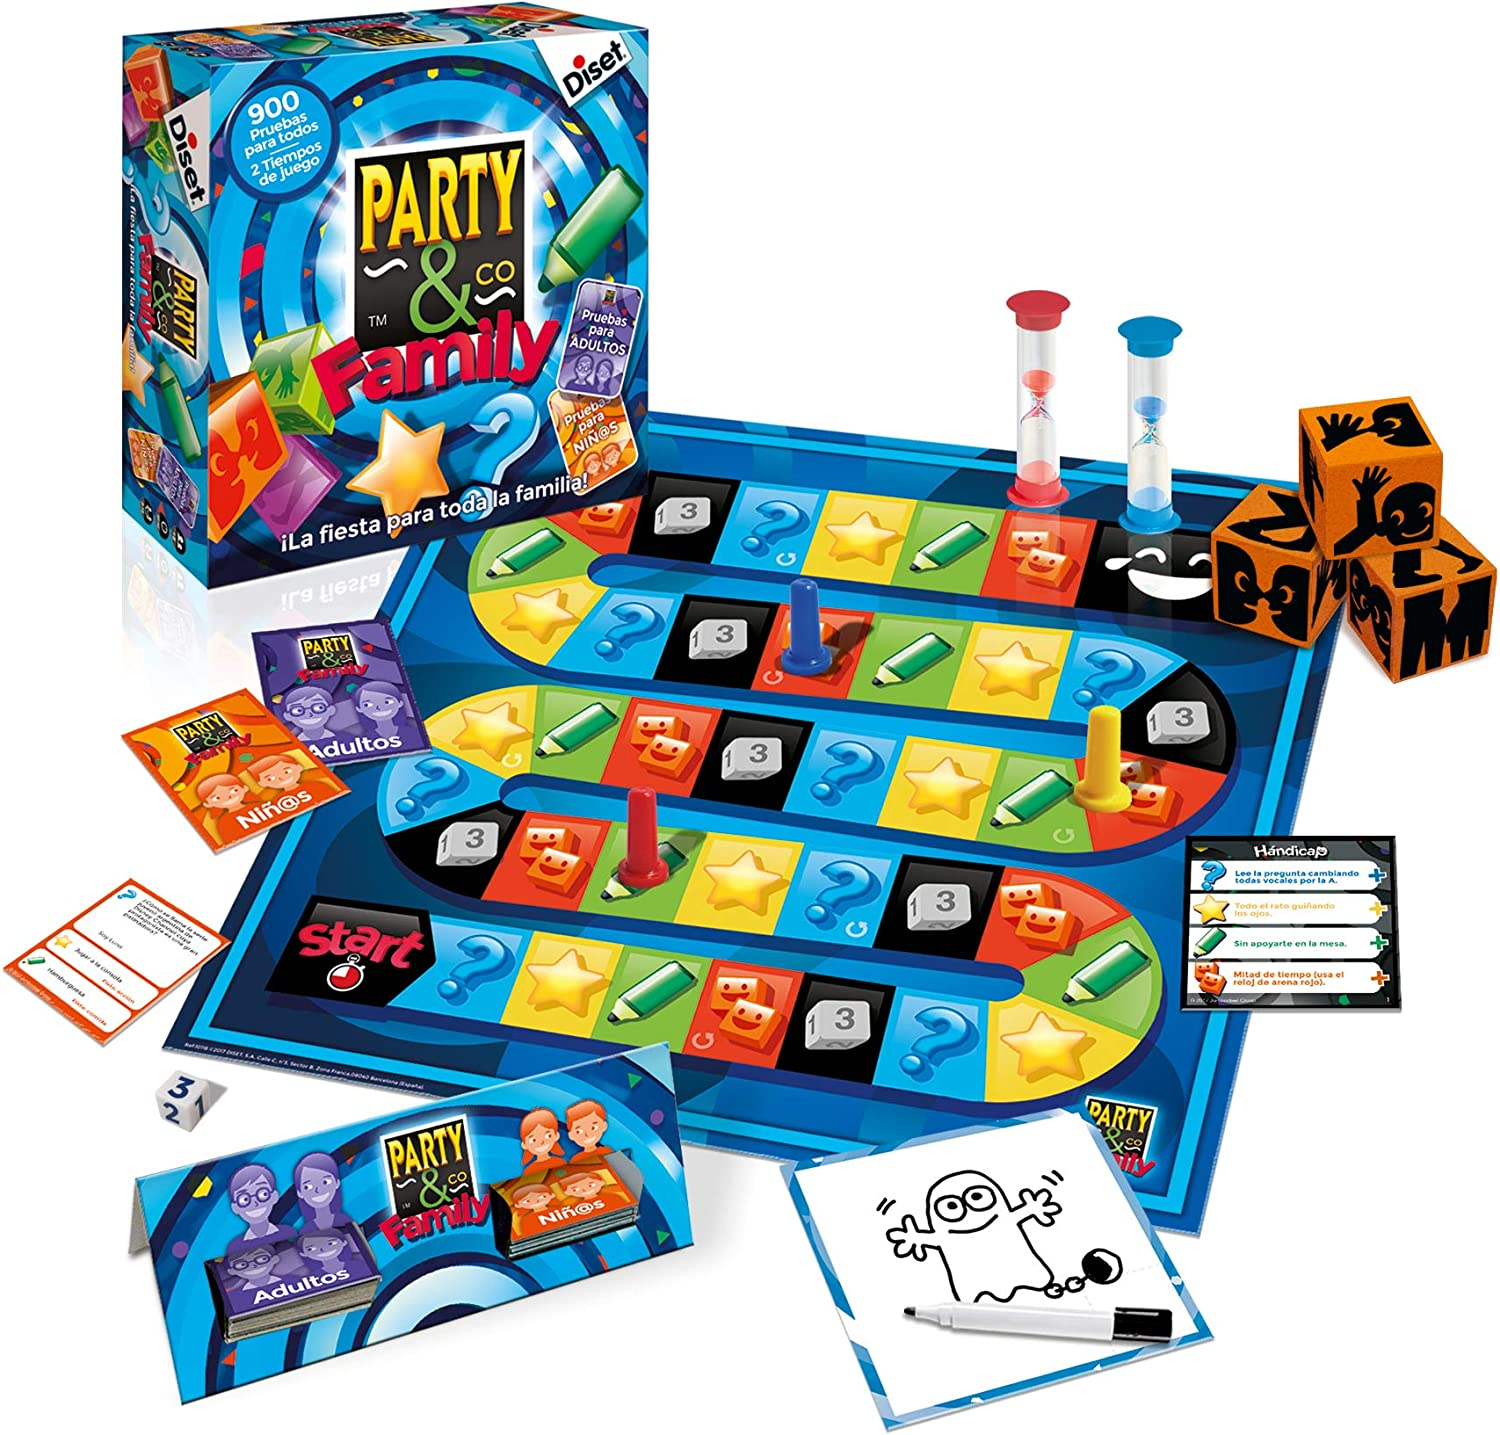 Diset - Party & Co Boing, (ref. 46611): Amazon.es: Juguetes y juegos